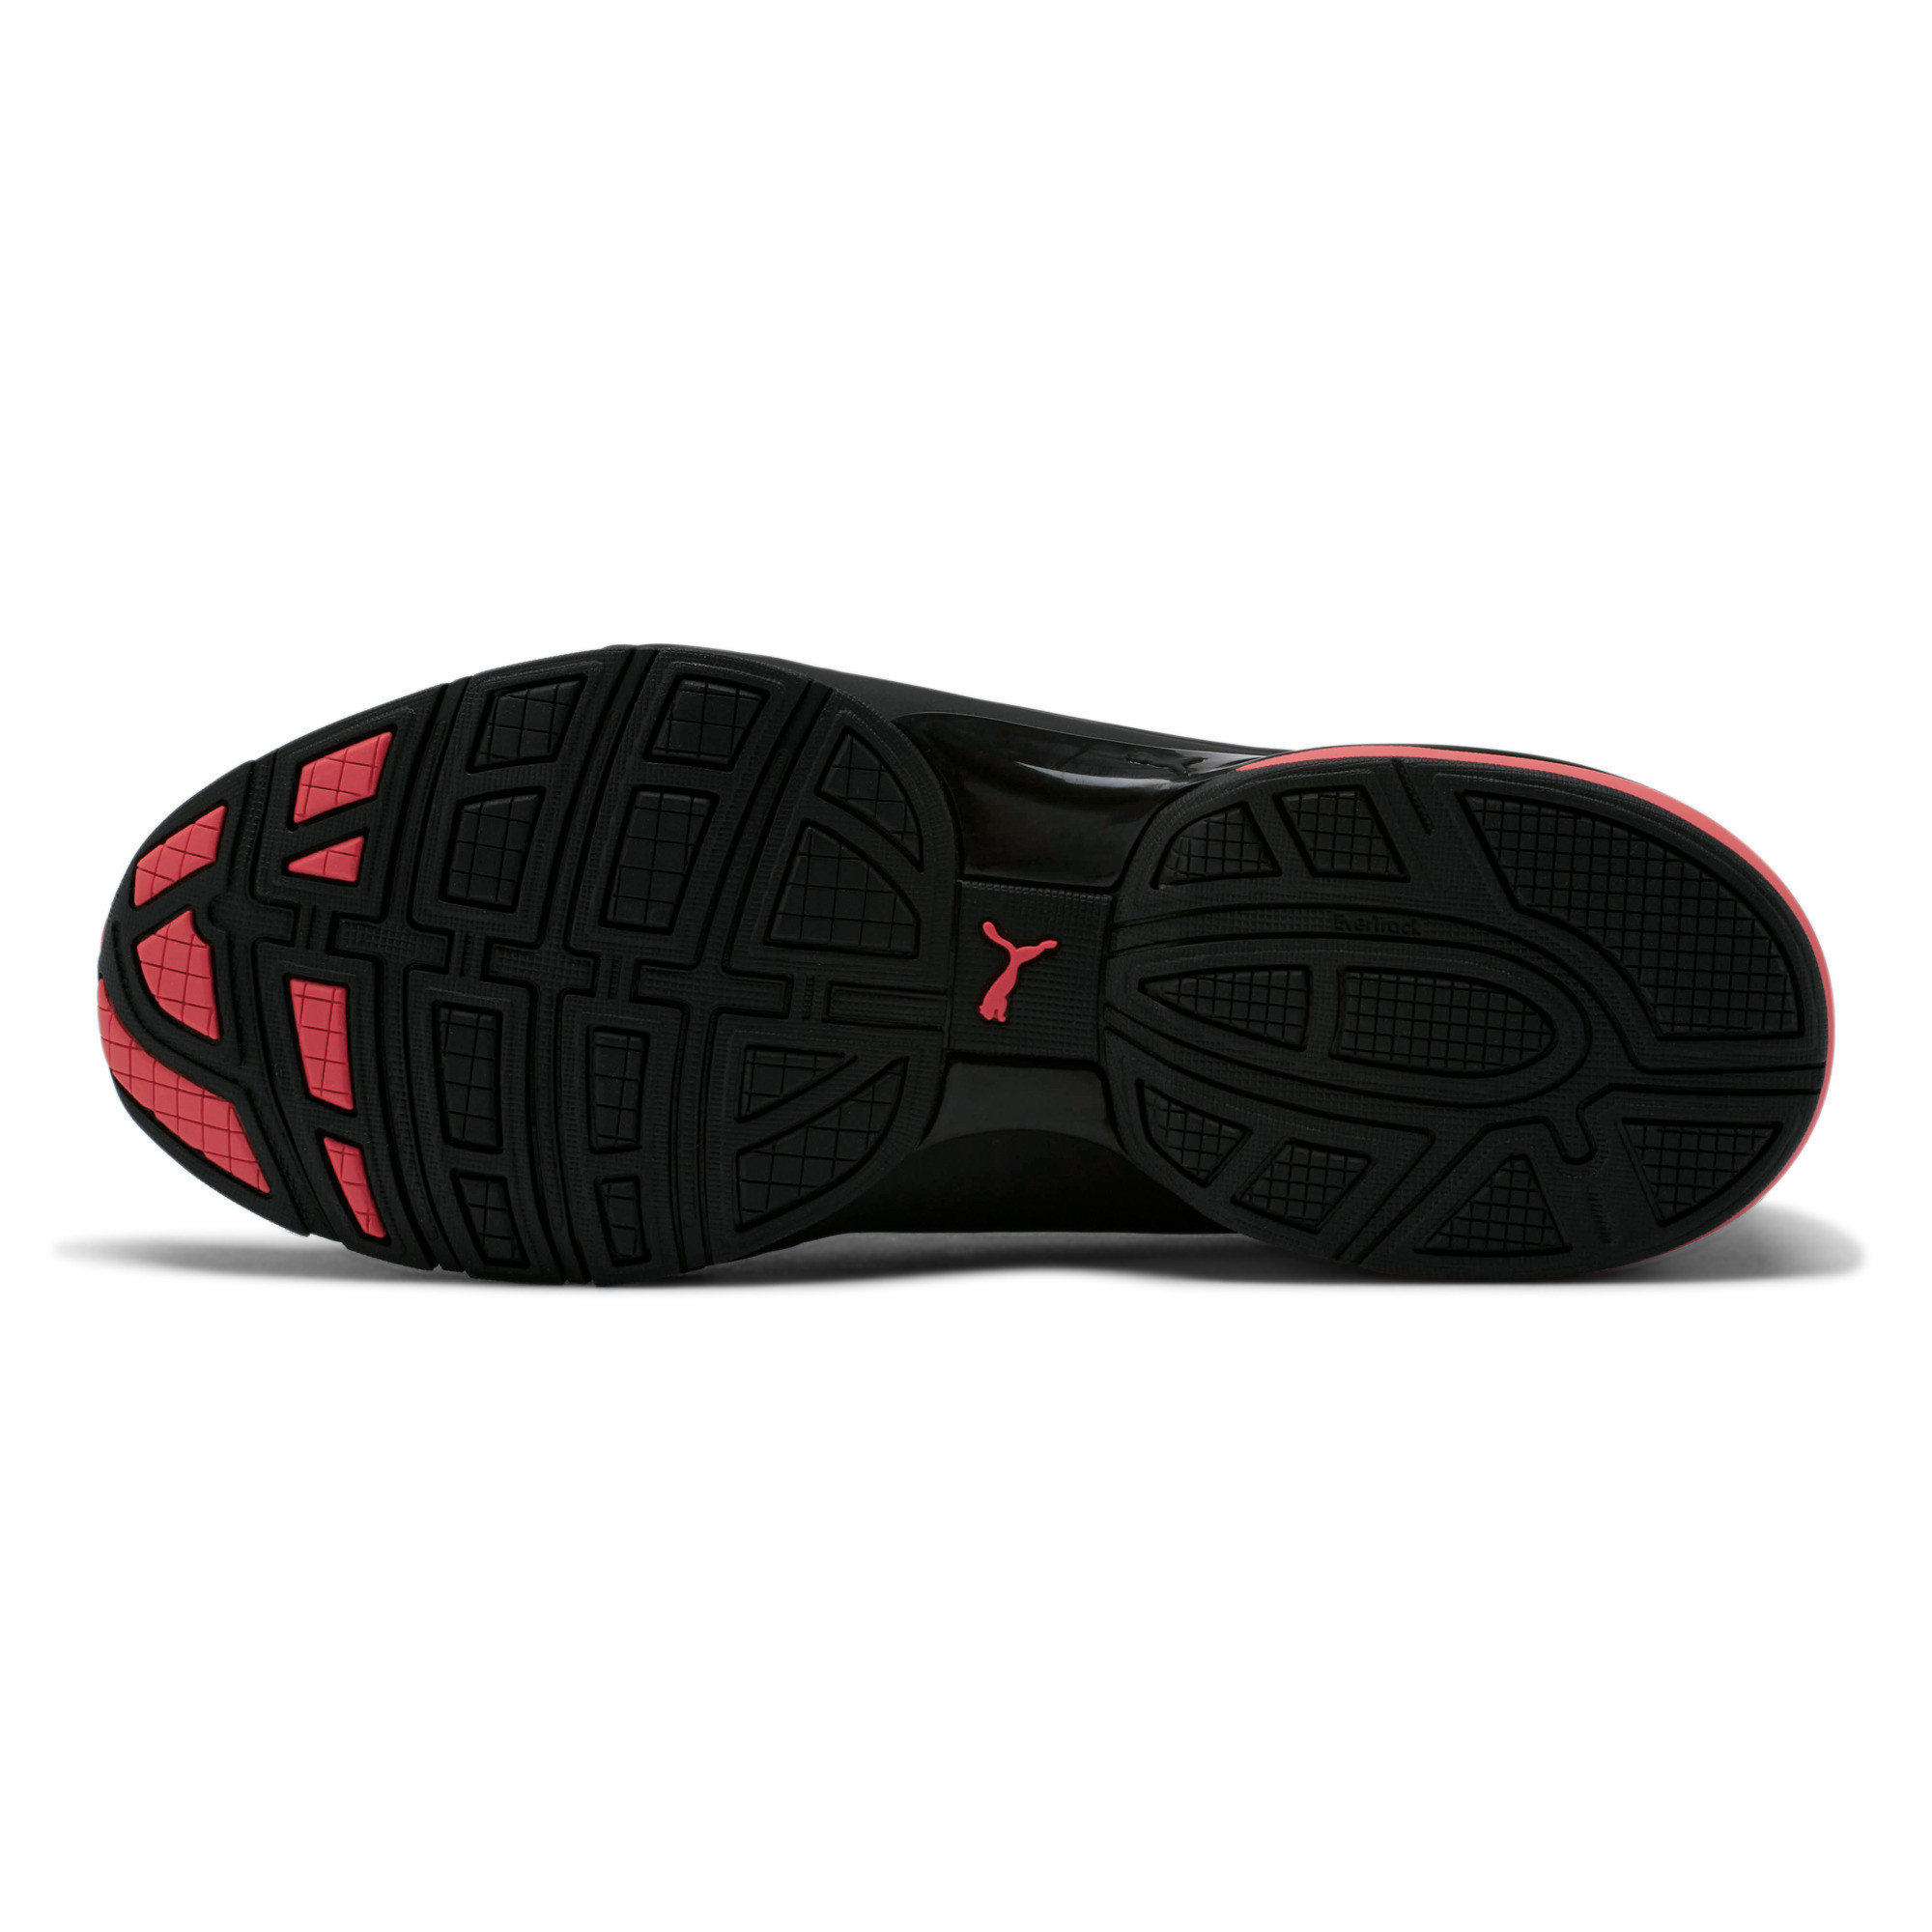 thumbnail 5 - PUMA Men's Viz Runner Training Shoes